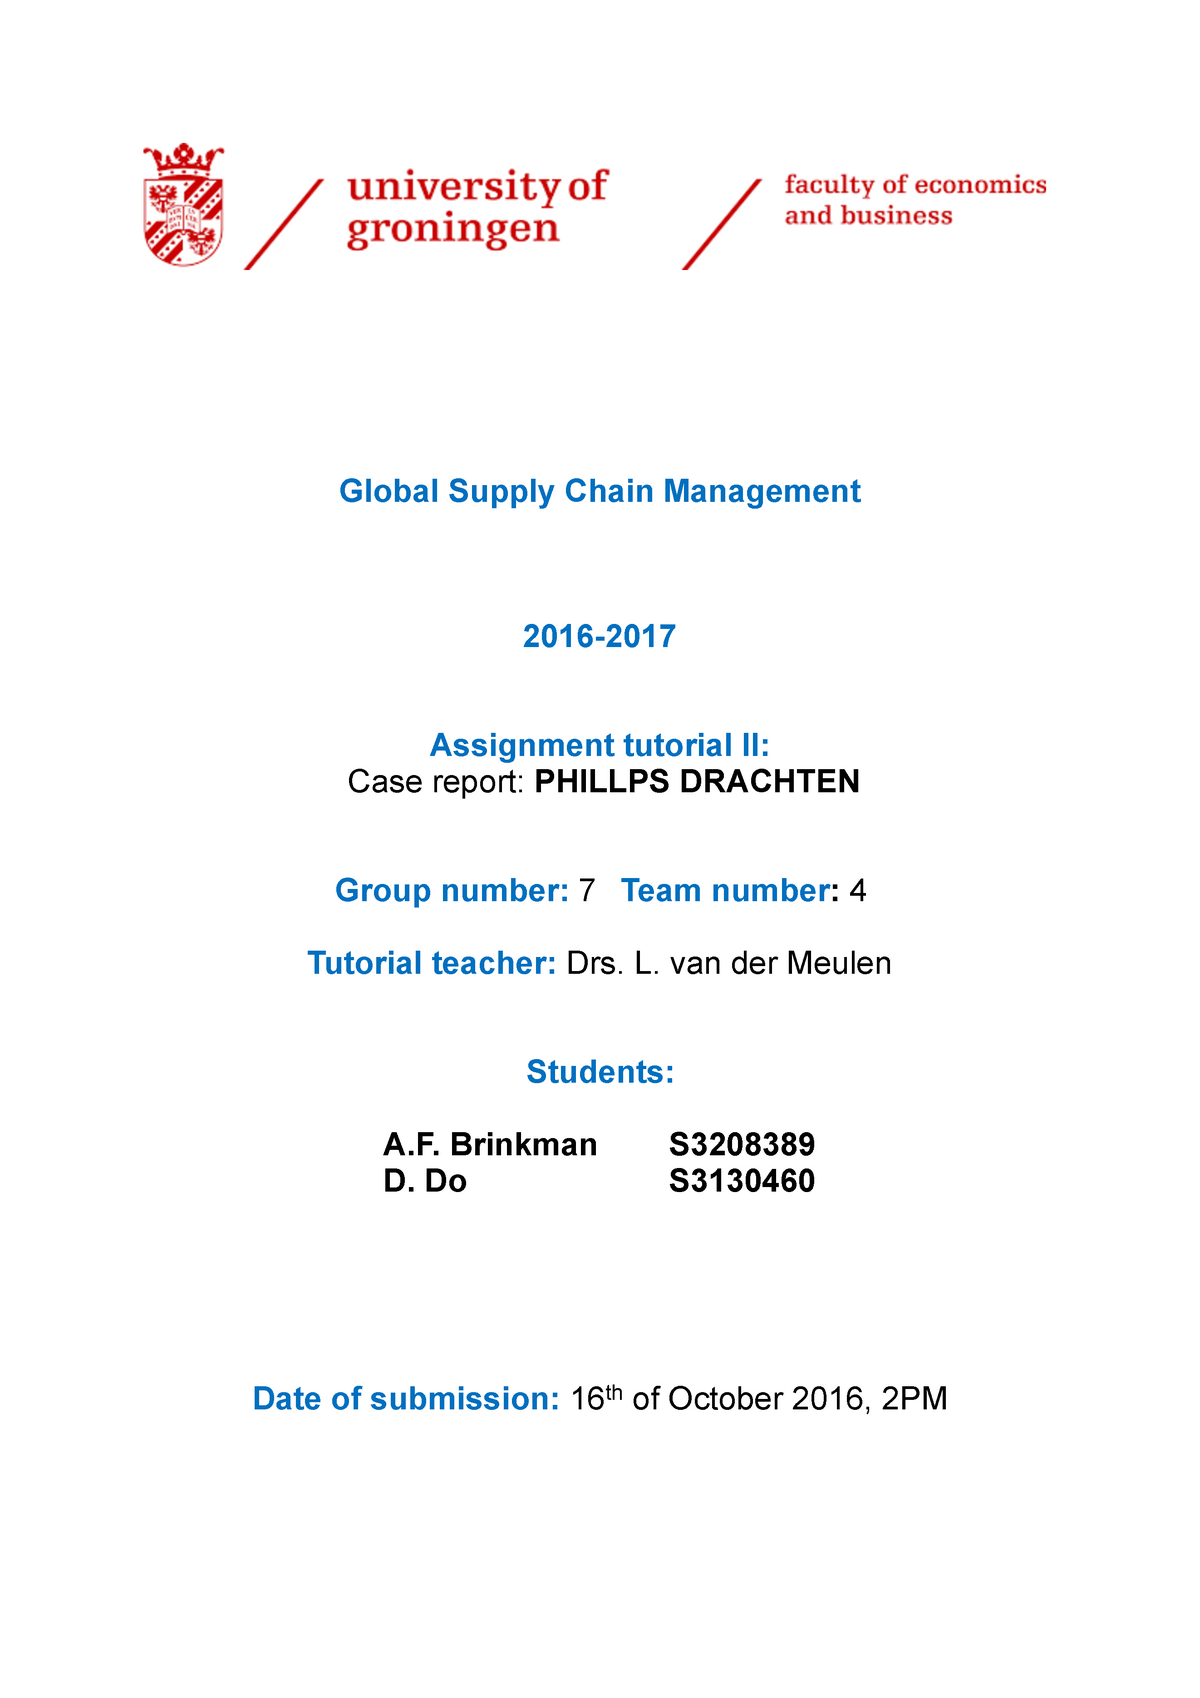 Group 7 4 Case Philips Drachten PDF - EBP018A05: Global